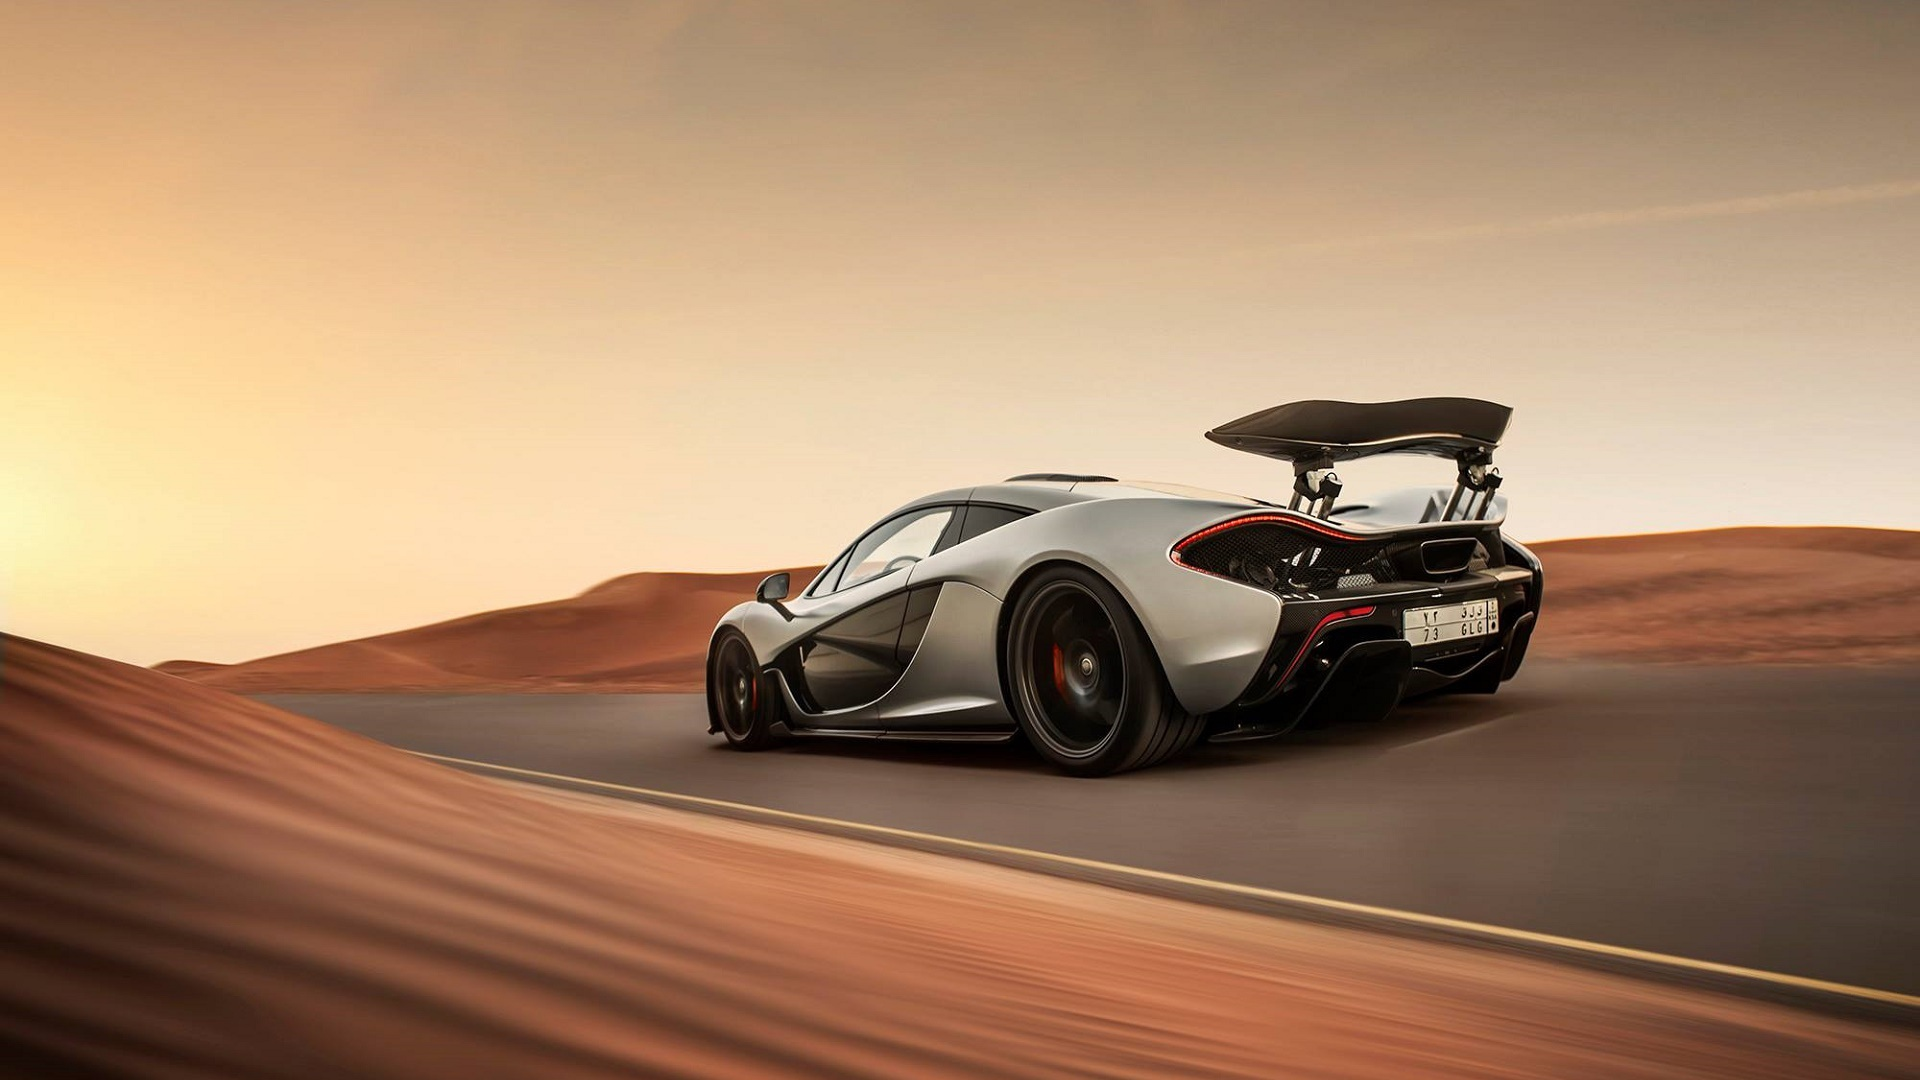 Collection of Mclaren P1 Wallpaper on HDWallpapers